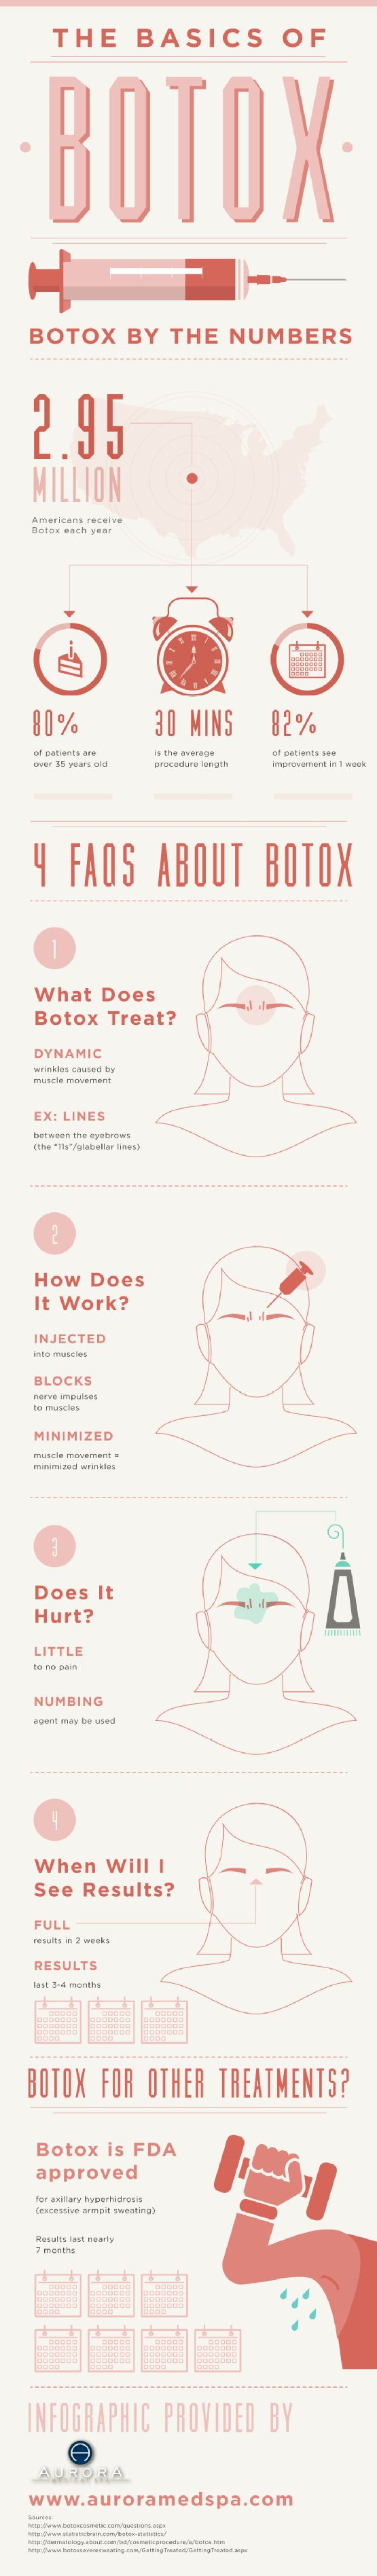 The Basics of Botox ......Botox is a toxin extracted from the bacteria clostridium botulinum. Which is used as an anti paralytic agent, it relaxes muscles. Hence it is injected into the facial muscles to provide strength and also rejuvenates the nerves resulting in a relaxed and a line free skin. ...... Here are some facts about Botox ....kur <3